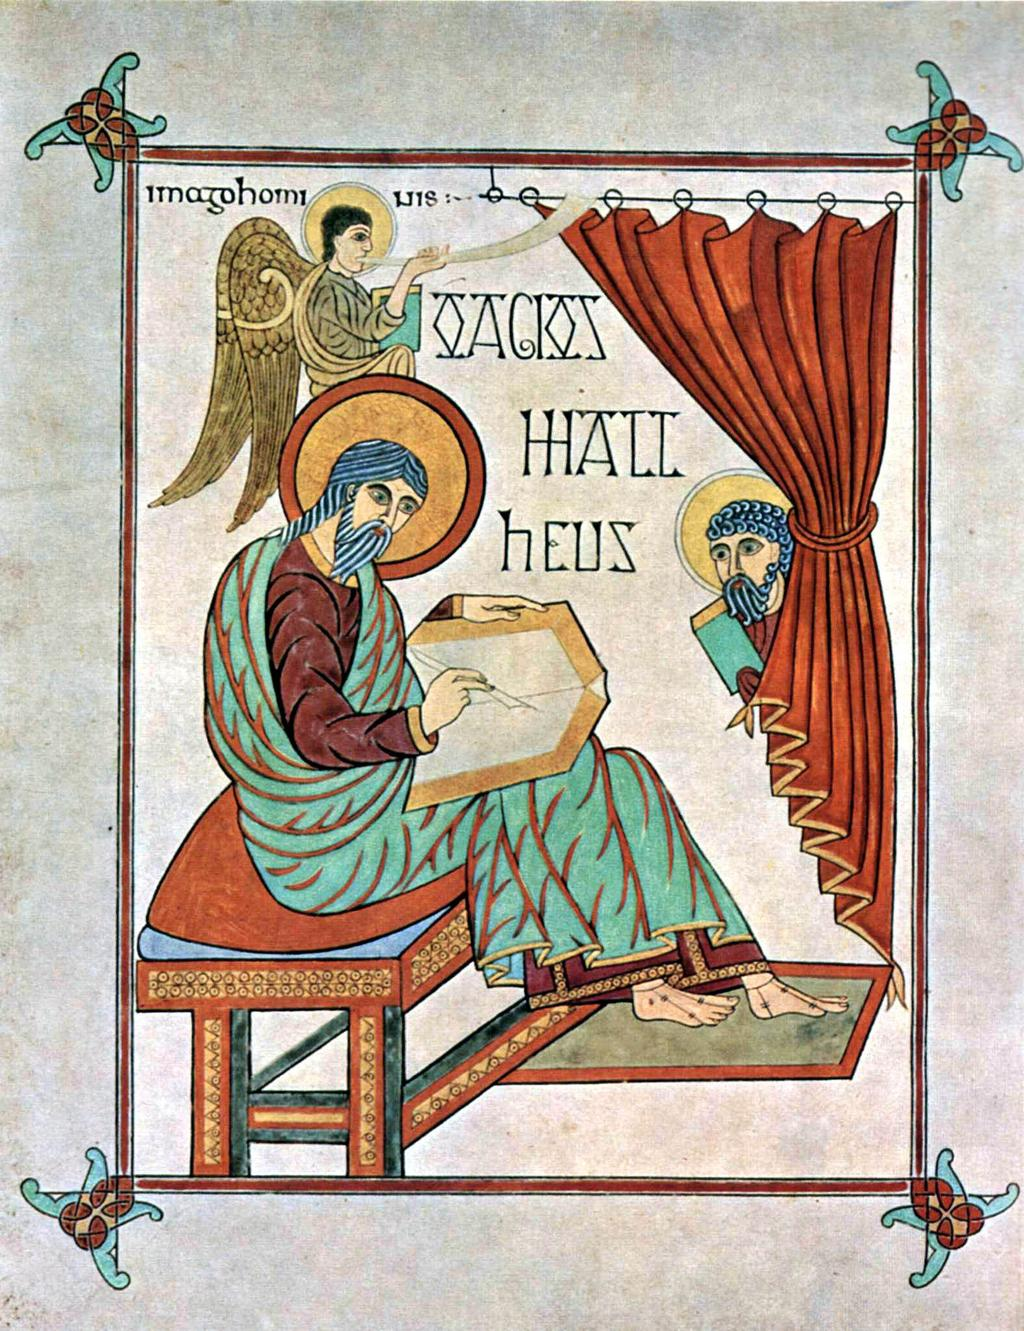 Hiberno Saxon Monasteries Saint Matthew Lindisfarne Gospels, England Insular manuscripts based some of their compositions on classical pictures from imported Mediterranean books Portrait of Saint